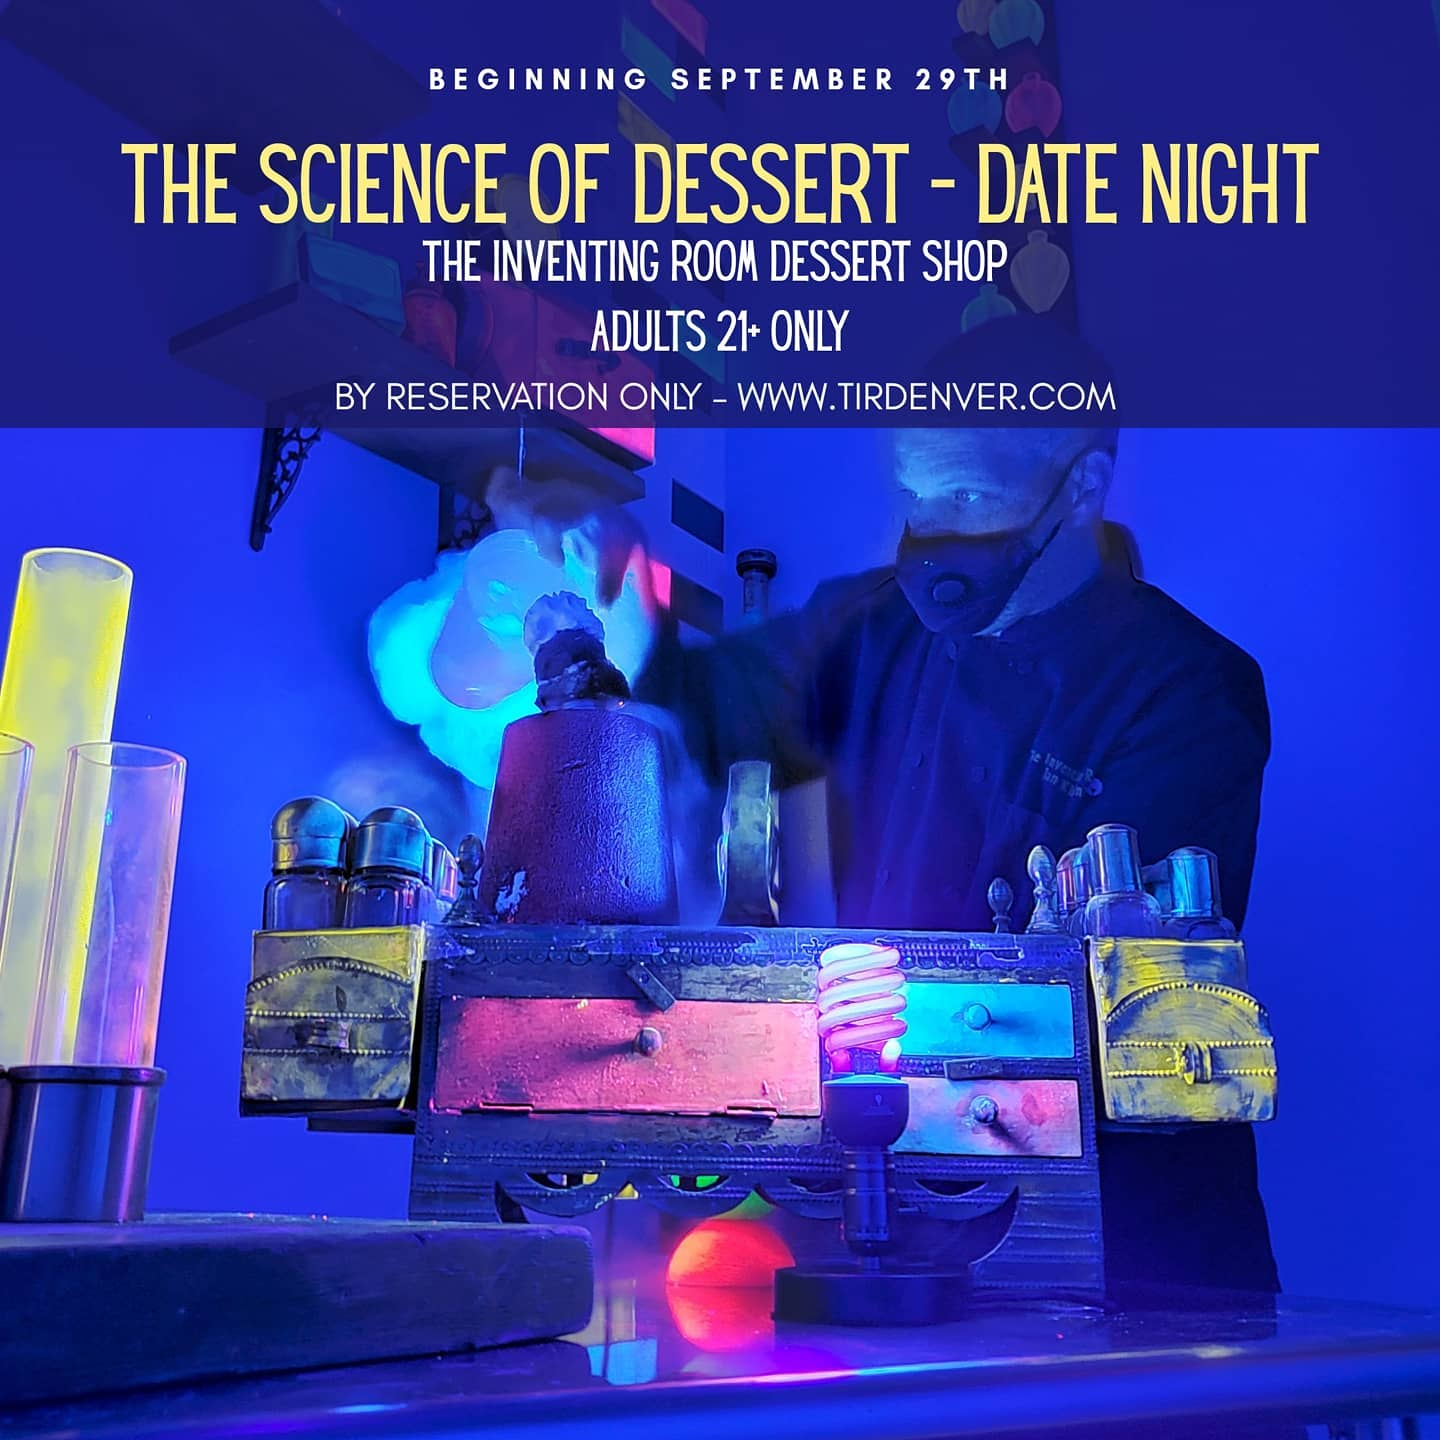 Chef Ian Kleinman demonstrating glow in the dark molecular gastronomy at The Inventing Room's pop-up The Science of Dessert - Date Night